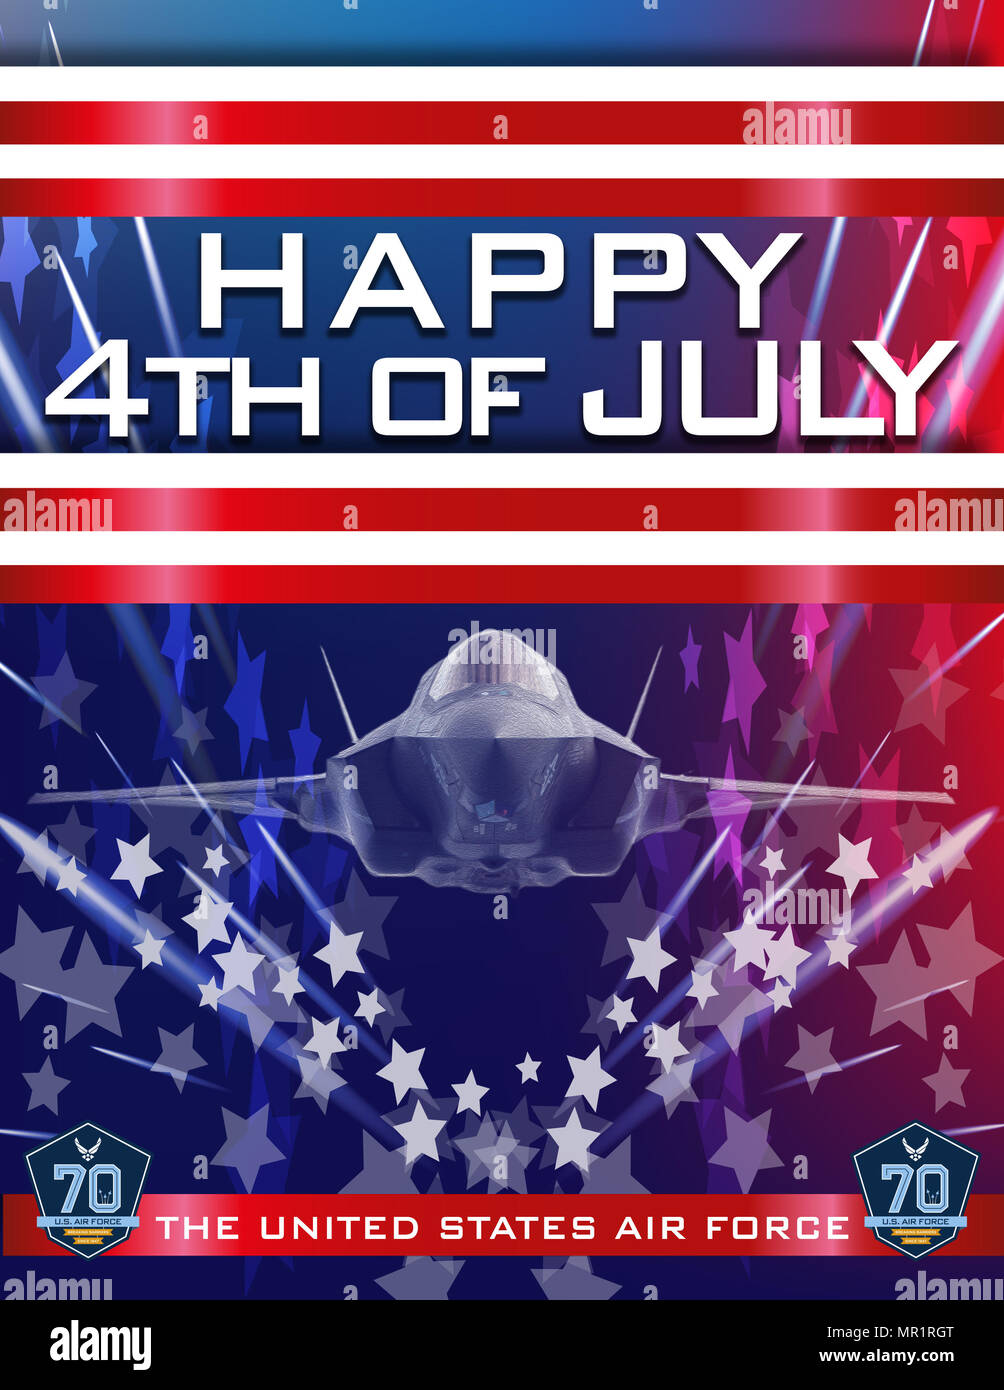 Patriotic Happy 4th Of July Celebration Poster With Af 70th Birthday